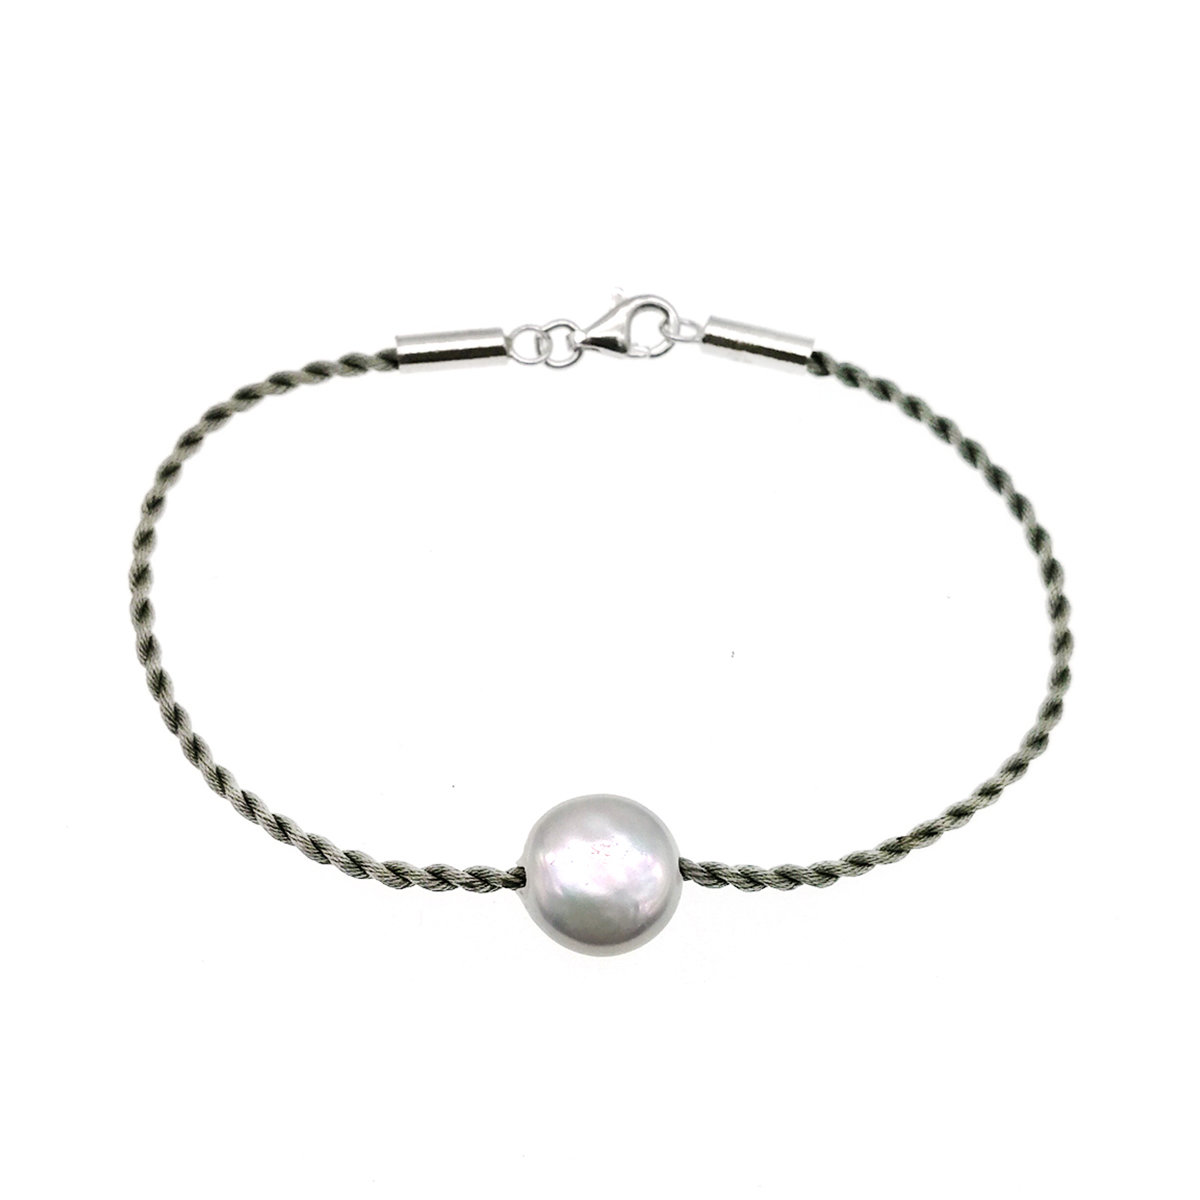 Cultured fresh water pearl with silk cord bracelet